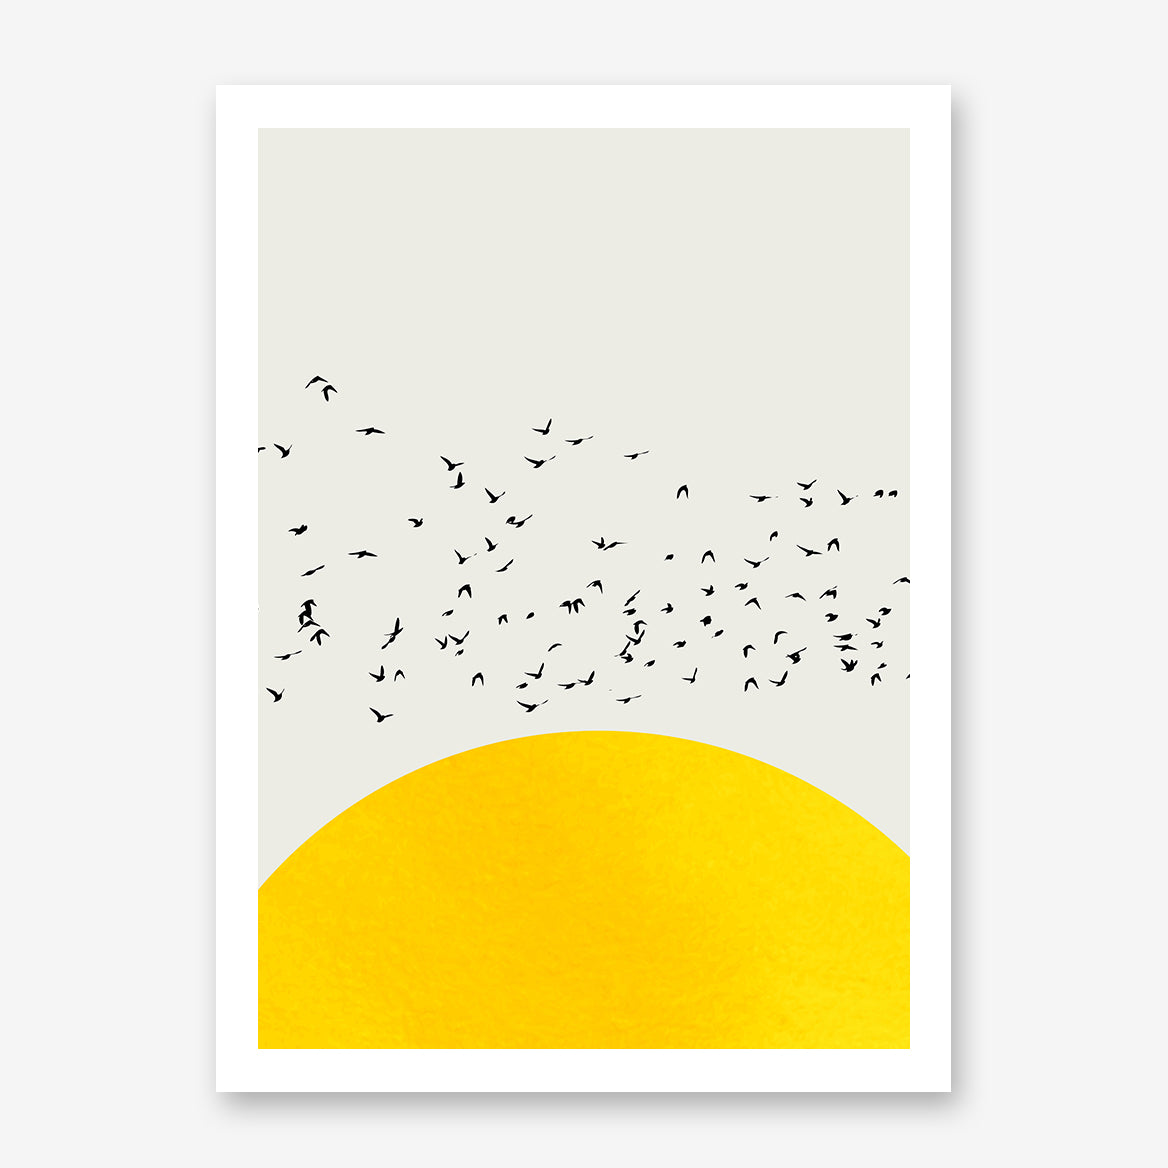 Poster print by Kubistika, with textured yellow sun and black birds, on light grey background